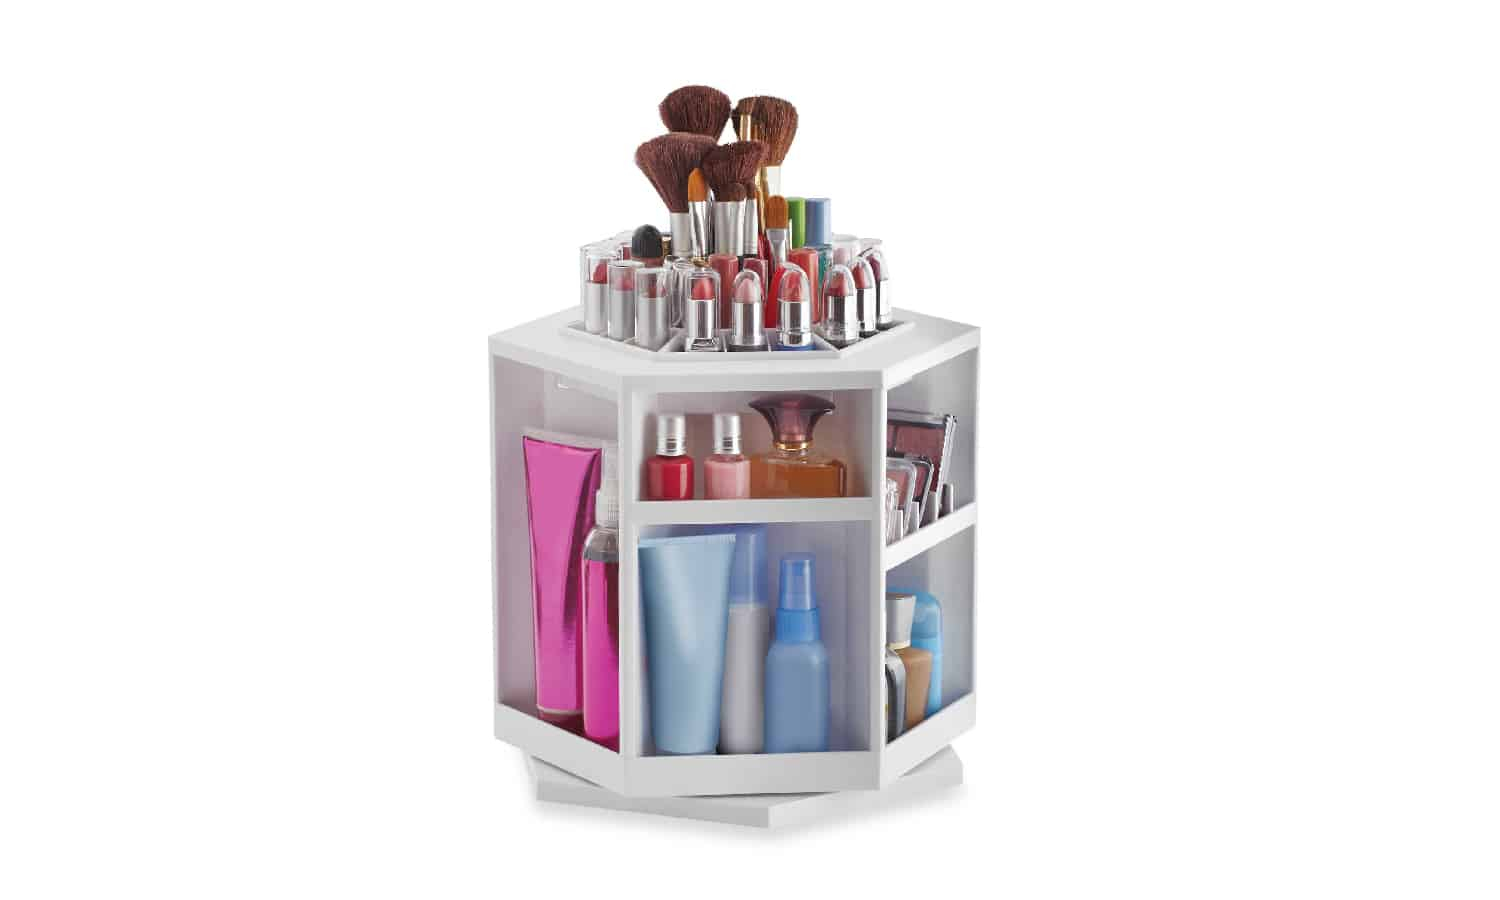 Makeup and Bathroom supplies spinning stand